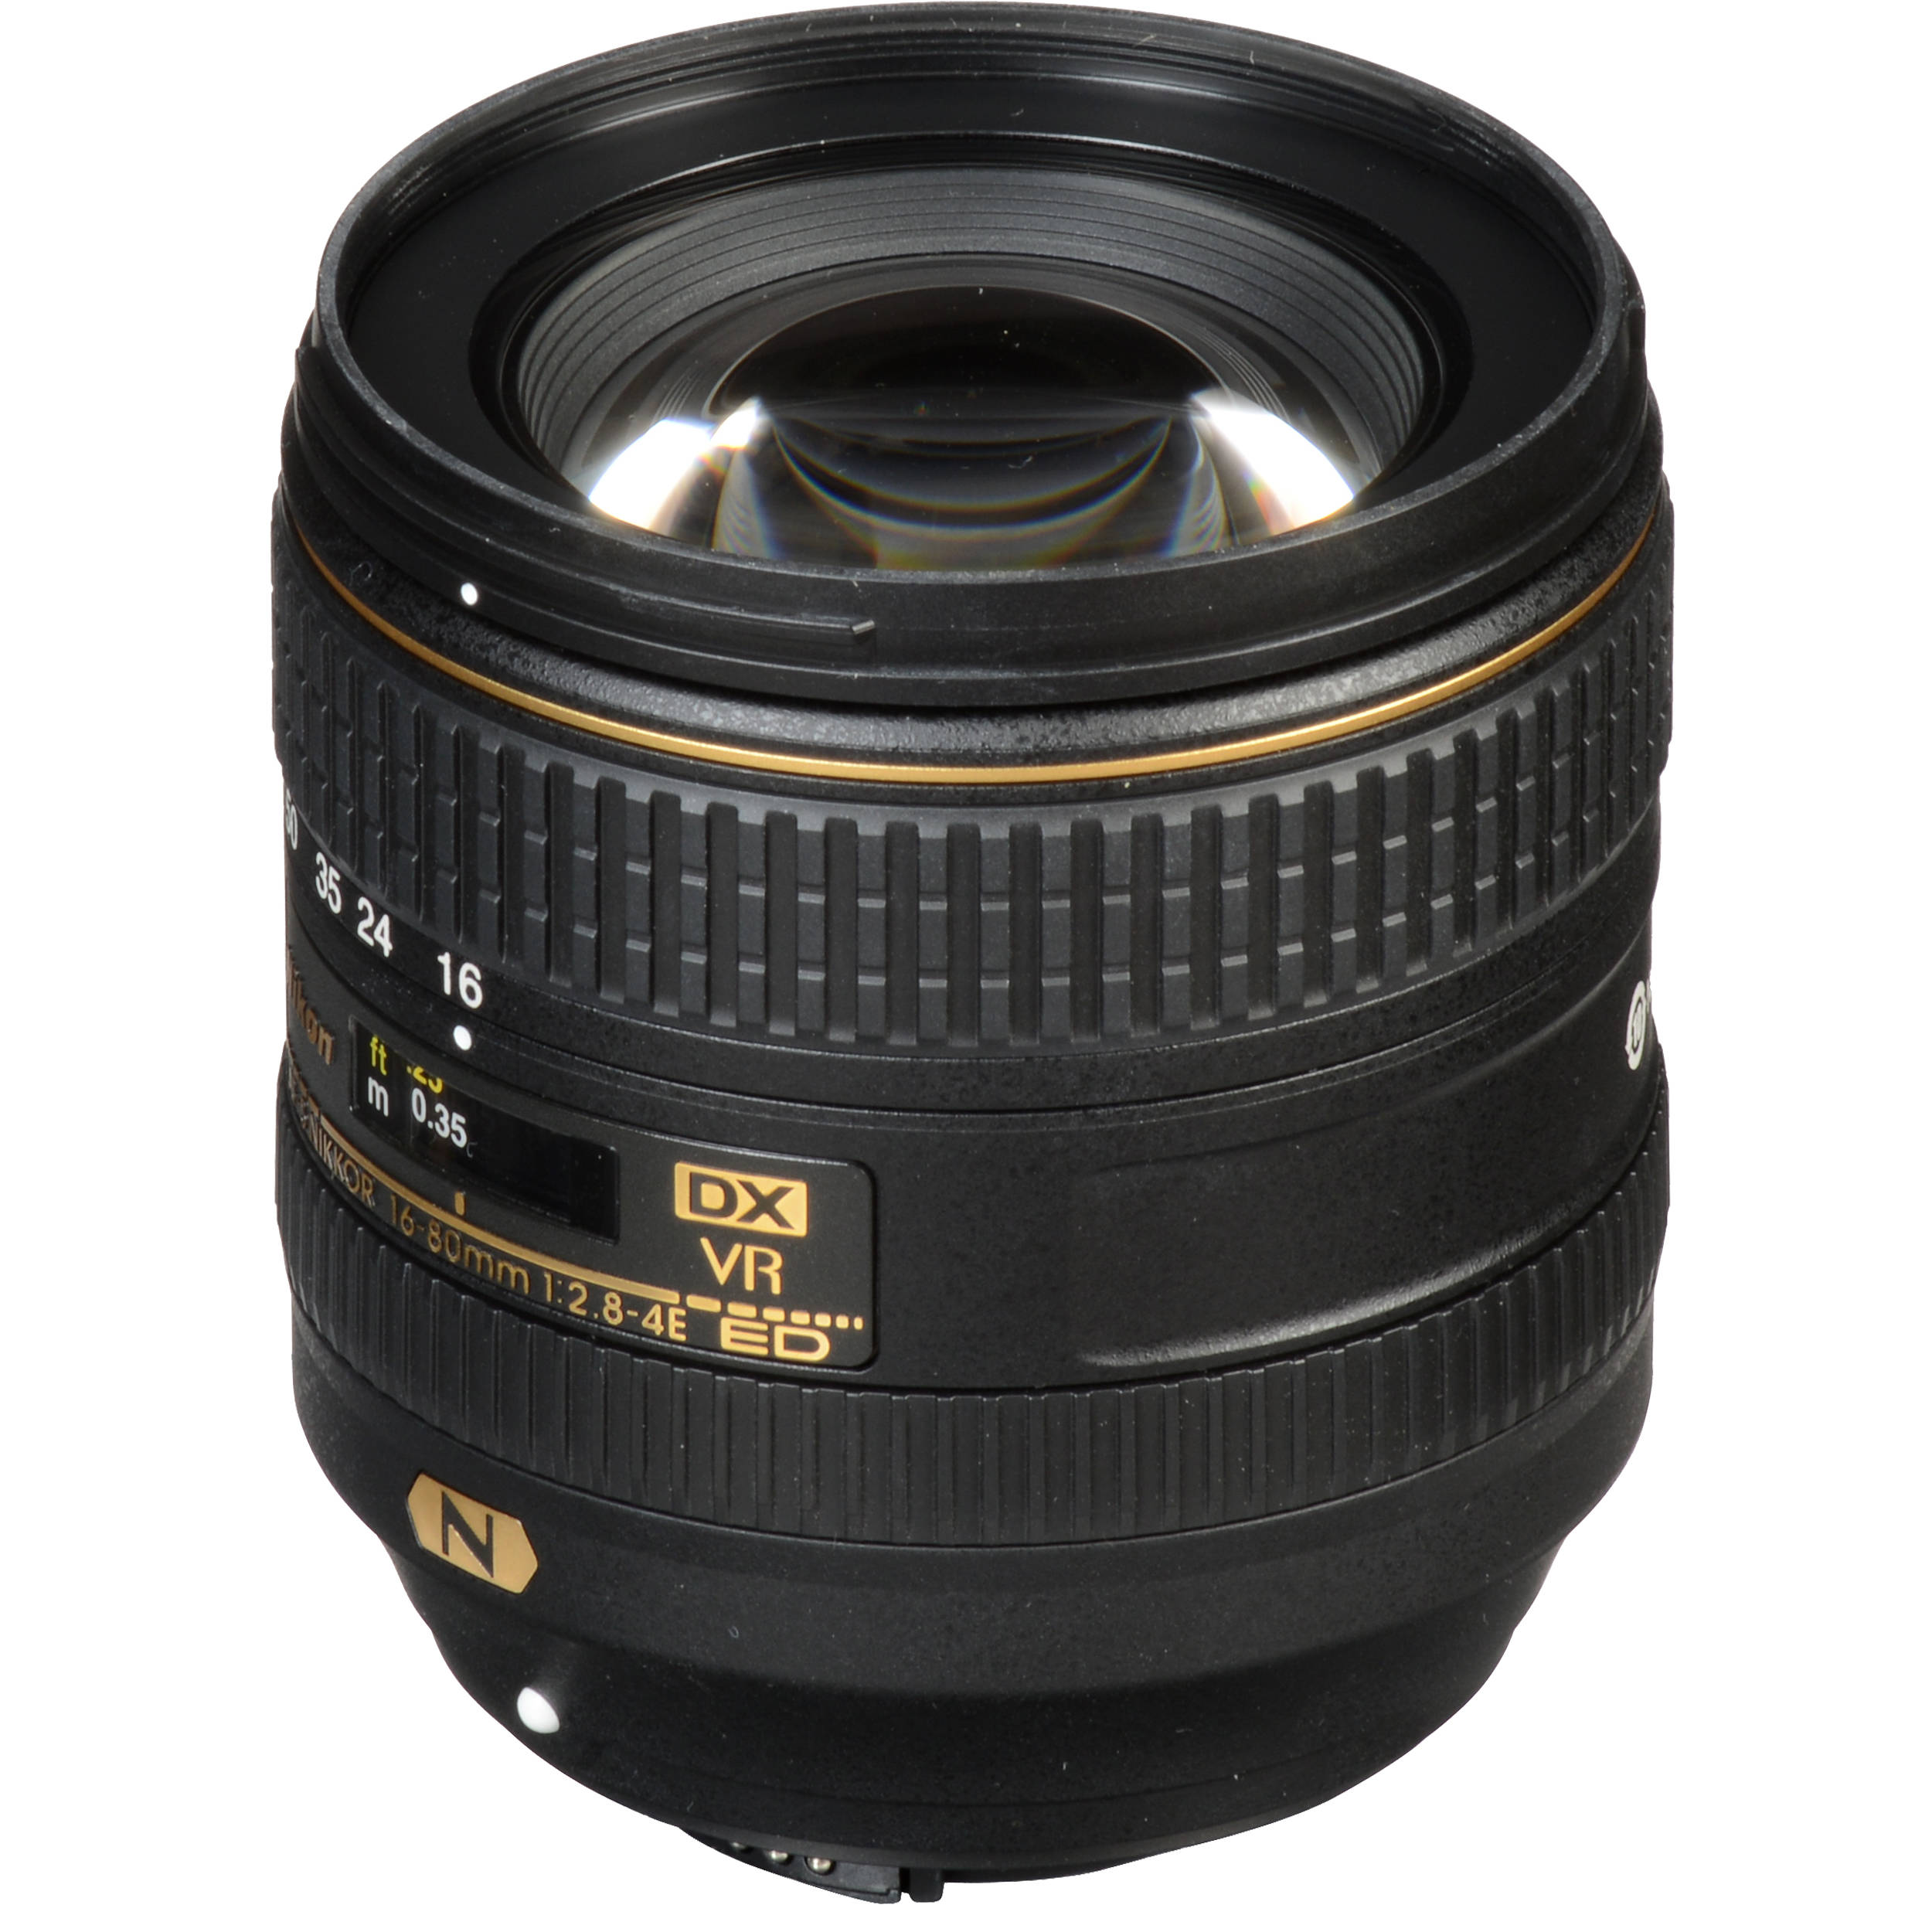 Nikon AF-S DX NIKKOR 16-80mm f//2.8-4E ED Vibration Reduction Zoom Lens with Auto Focus for Nikon DSLR Cameras